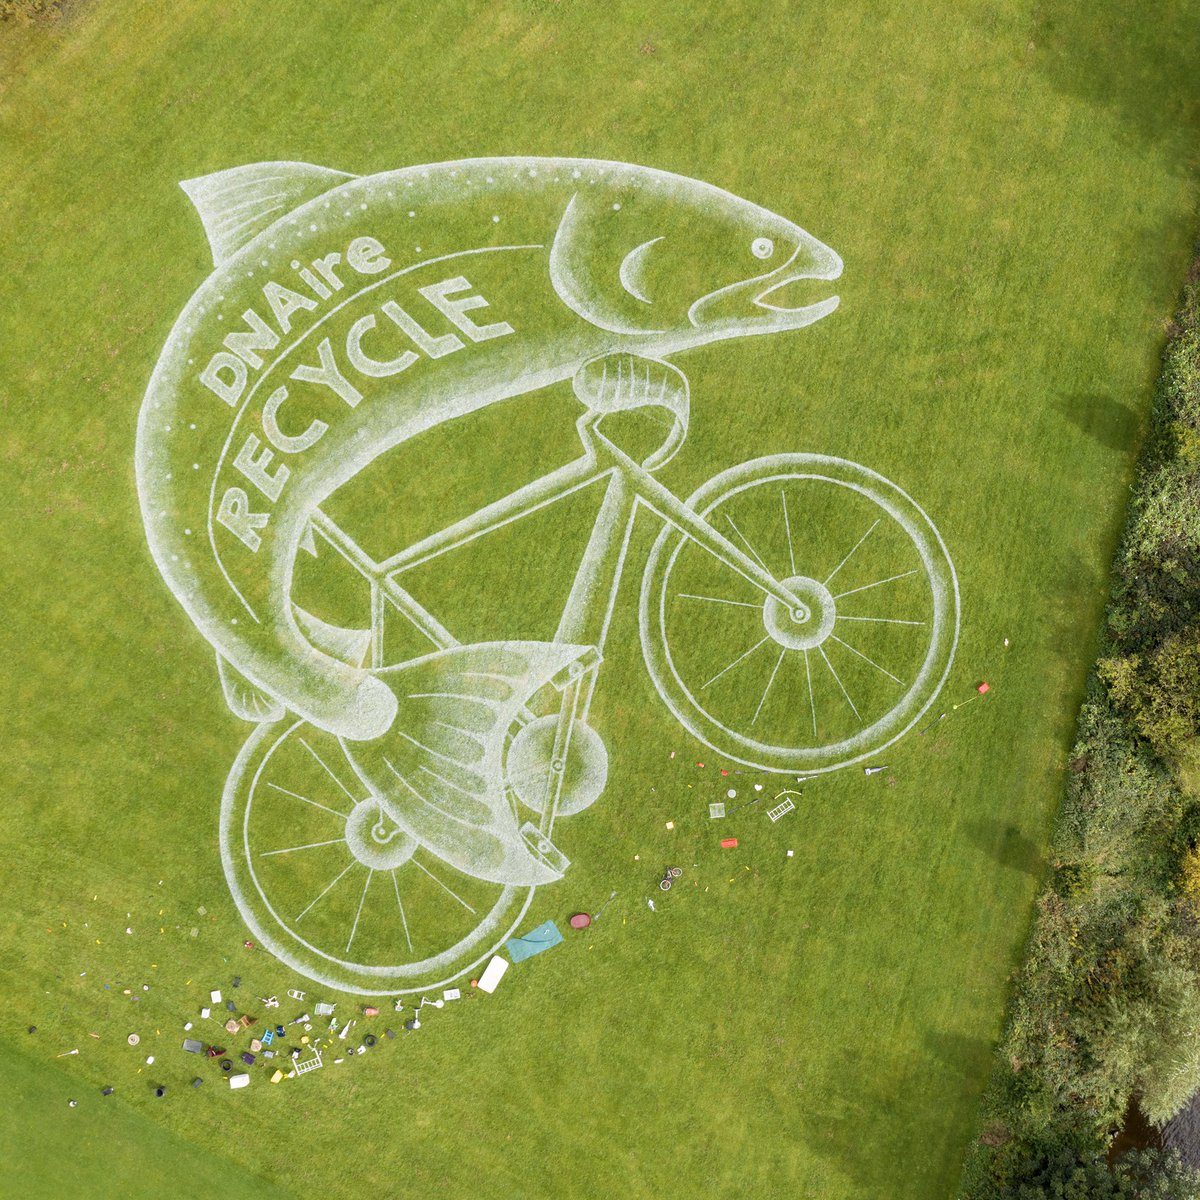 @bradfordmdc @aireriverstrust @sandinyoureye heading to @Welcome2Yorks offices this morning to find out if #fishonabike has been successful in the #yorkshire2019 landart competition